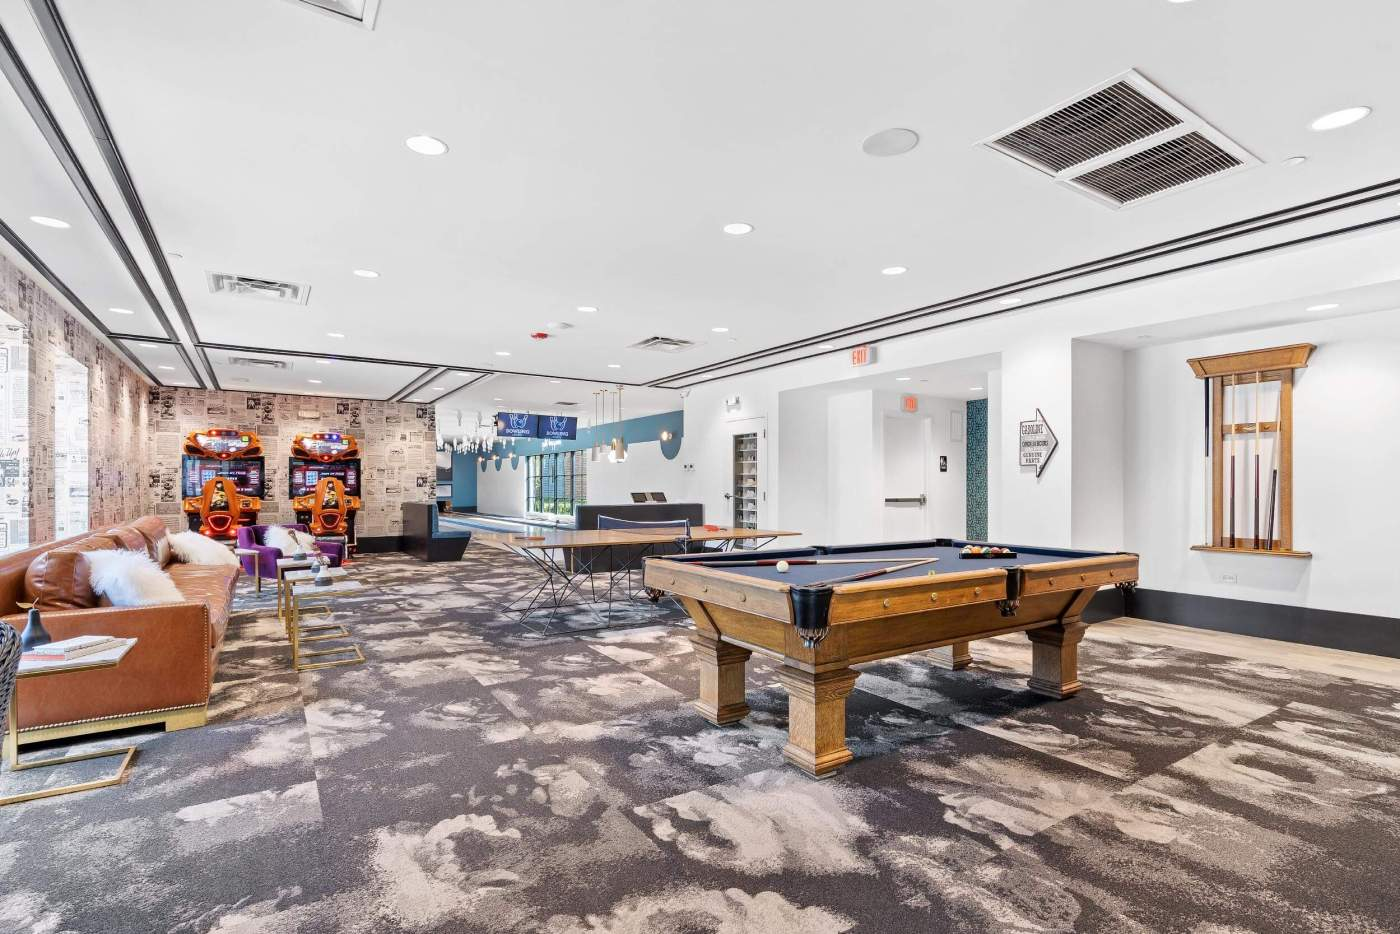 Commercial real estate photo of the entertaining area with pool table and bowling lanes